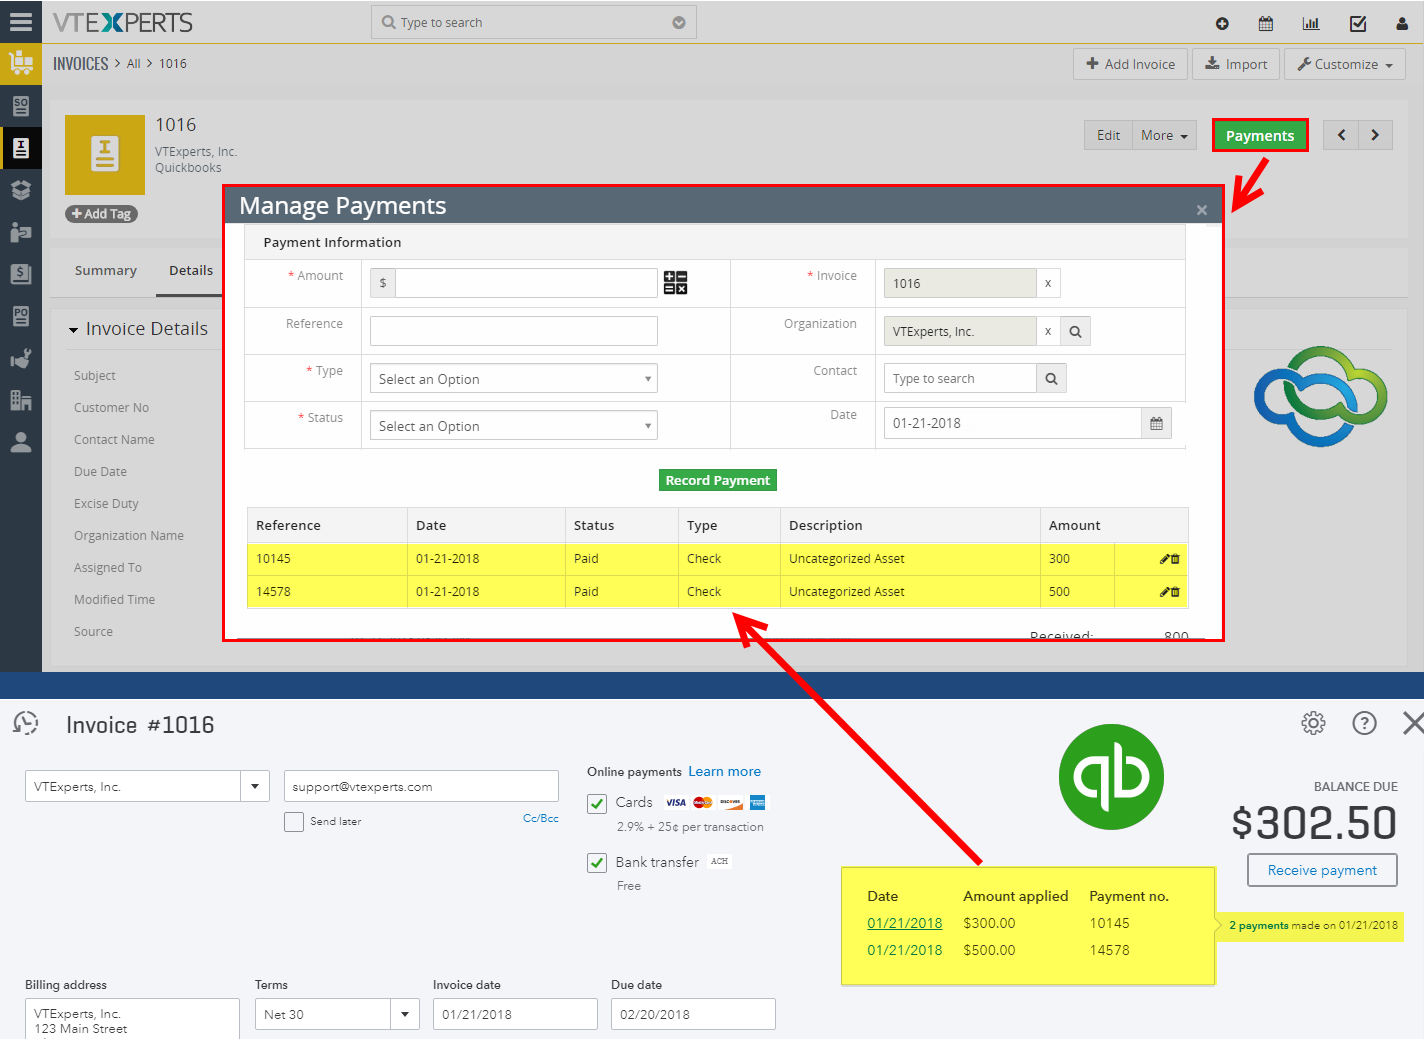 QuickBooks Online Integration for VTiger 7 - Payments